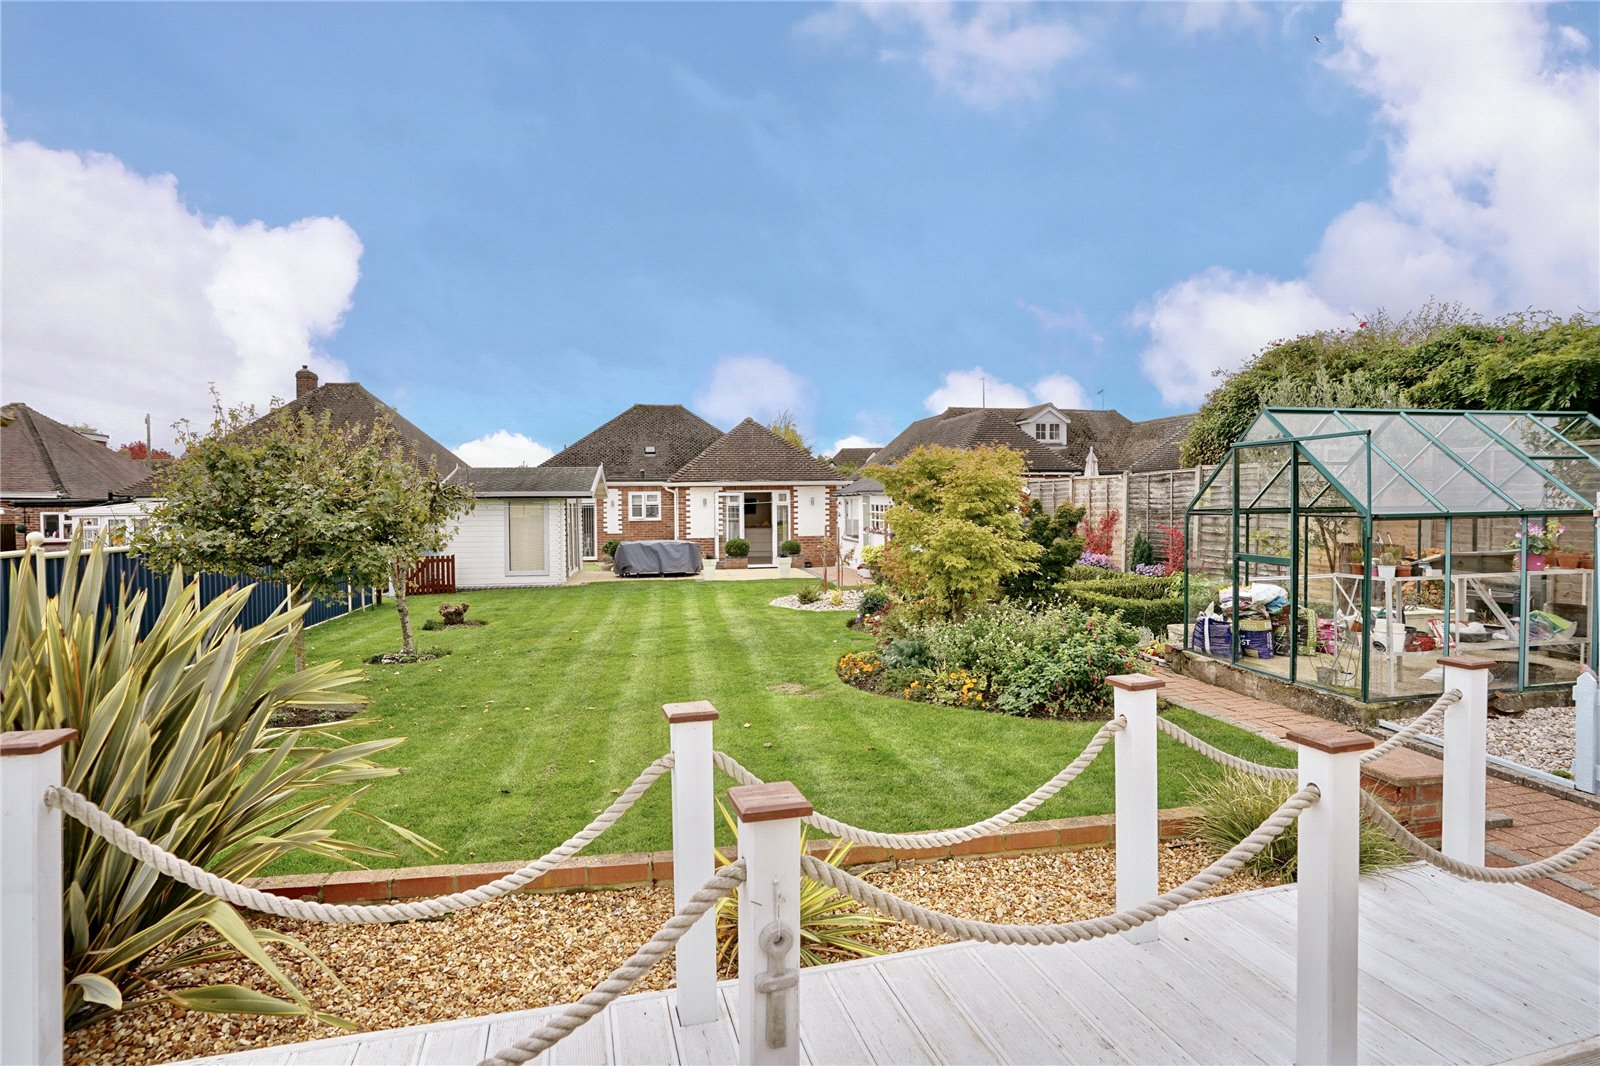 3 bed bungalow for sale in St. Ives, PE27 6RJ - Property Image 1